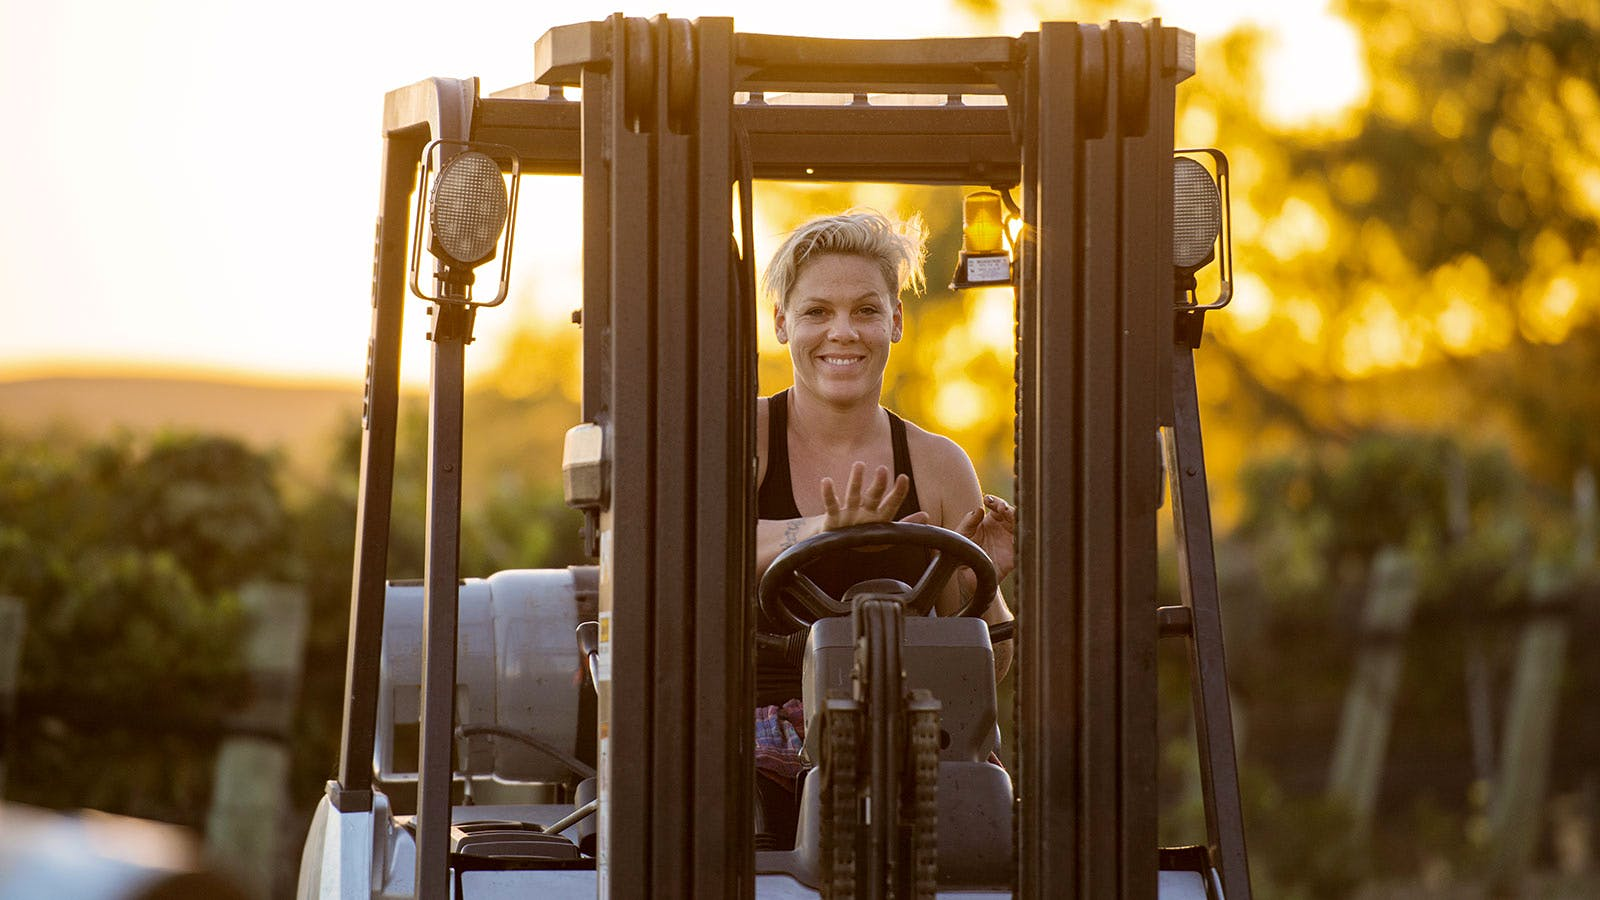 From Tour Dates to Grape Crates: A Live Chat with Musical Artist and Vintner P!nk